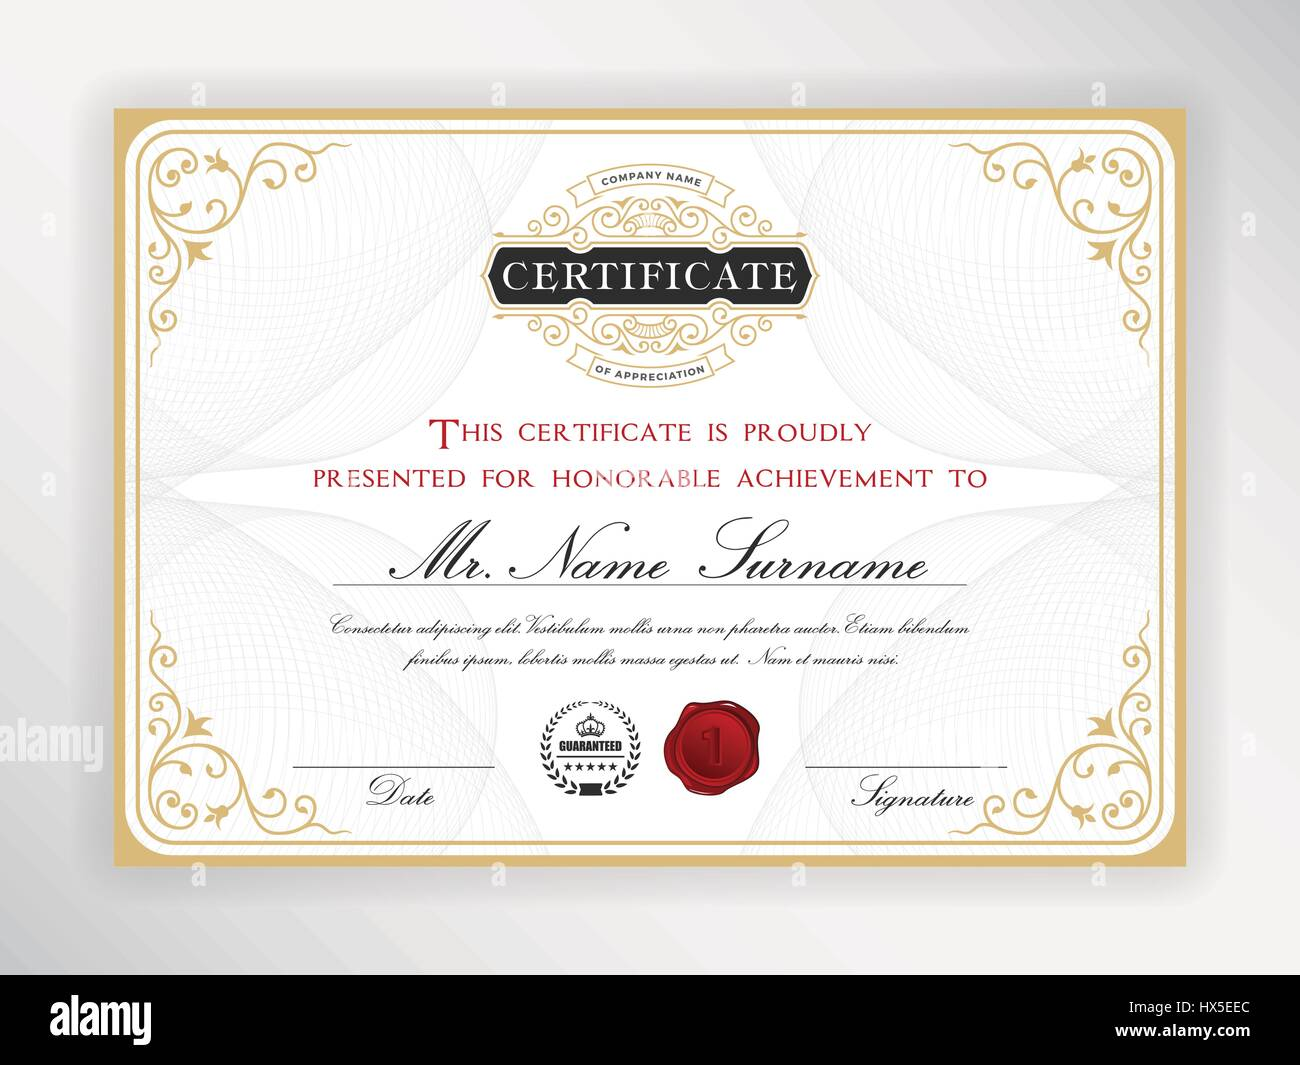 Elegant Certificate Template Design With Emblem Vintage Border A4